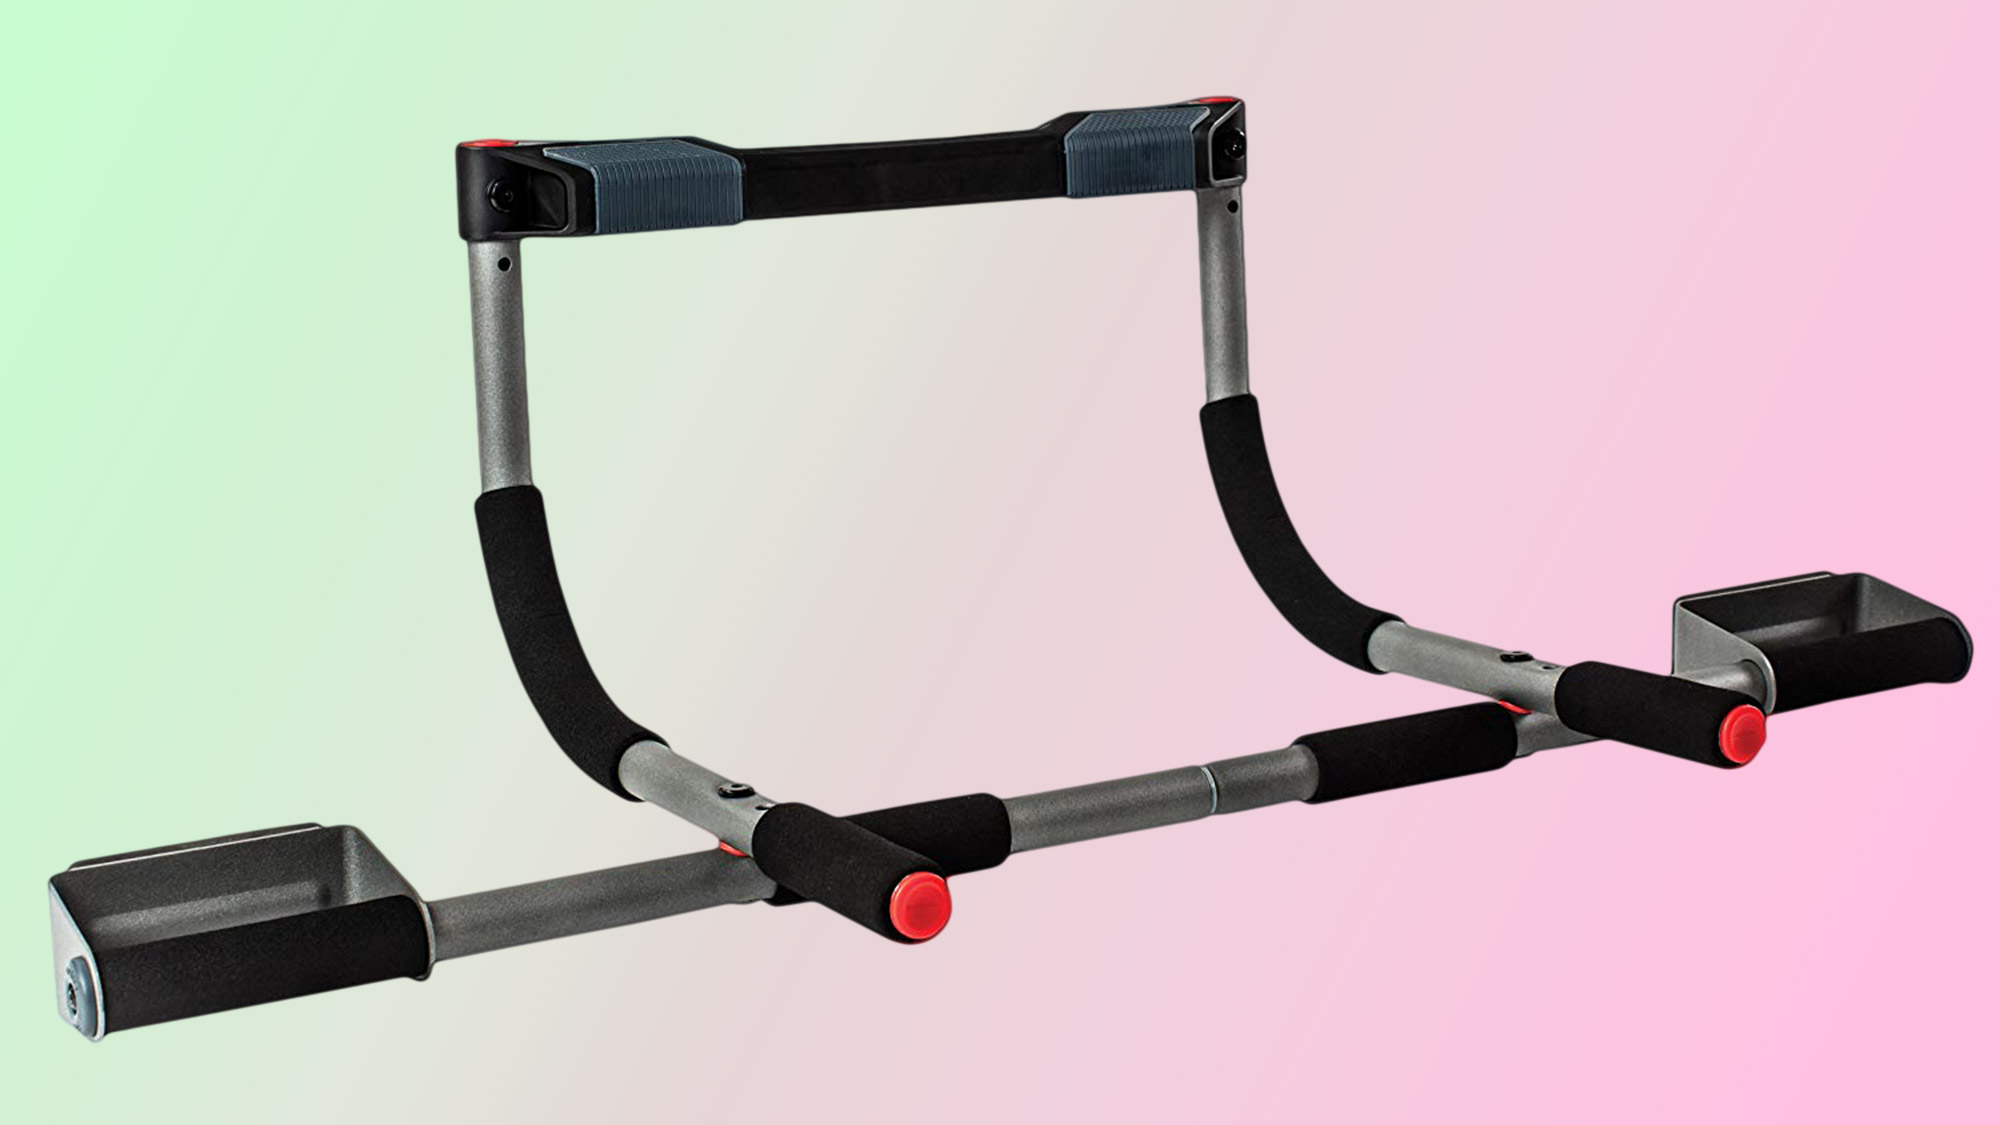 Best home gym equipment: Perfect Fitness Multi-Gym Doorway Pull Up Bar